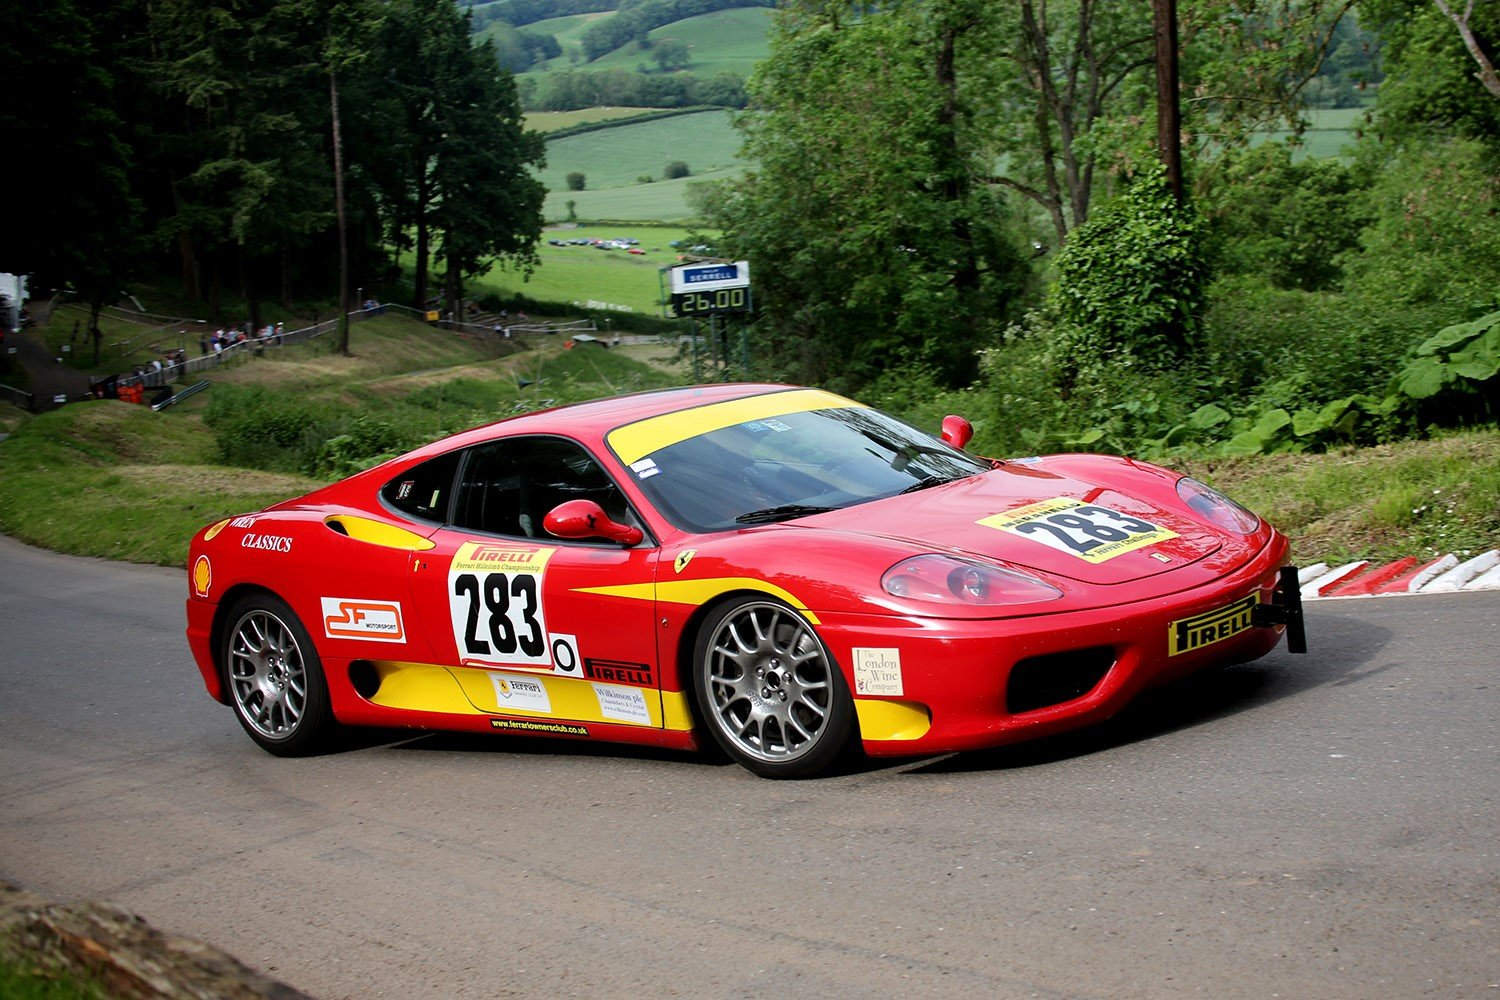 1999 FERRARI 360 MODENA – PFMC Spec - LHD road legal For Sale (picture 2 of 6)